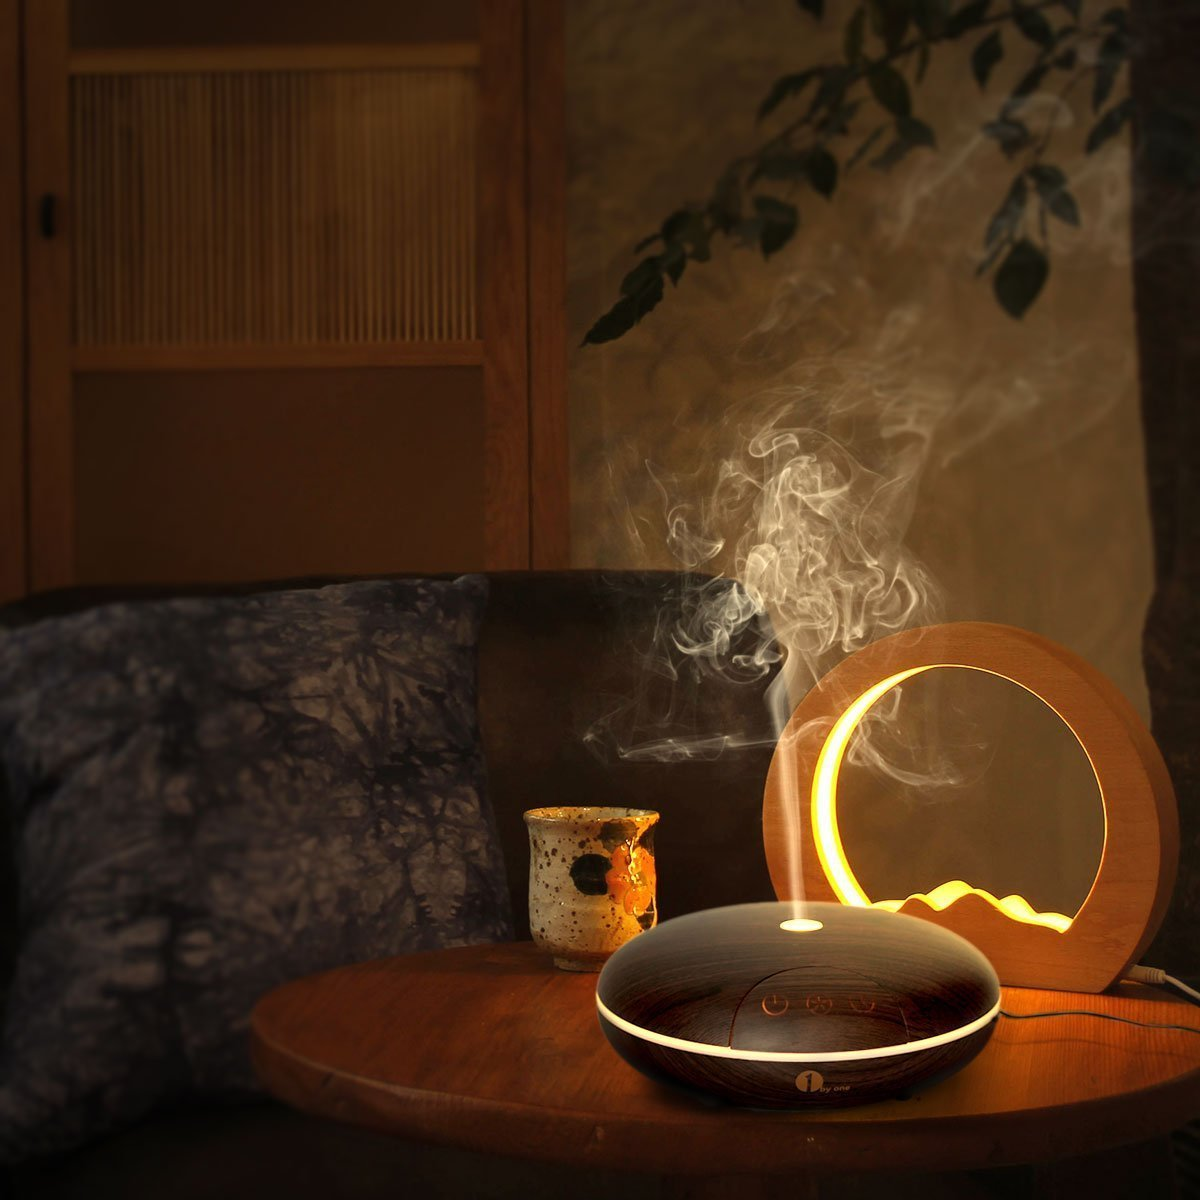 oil diffuser| aromatherapy| humidifier| aroma| coolmist